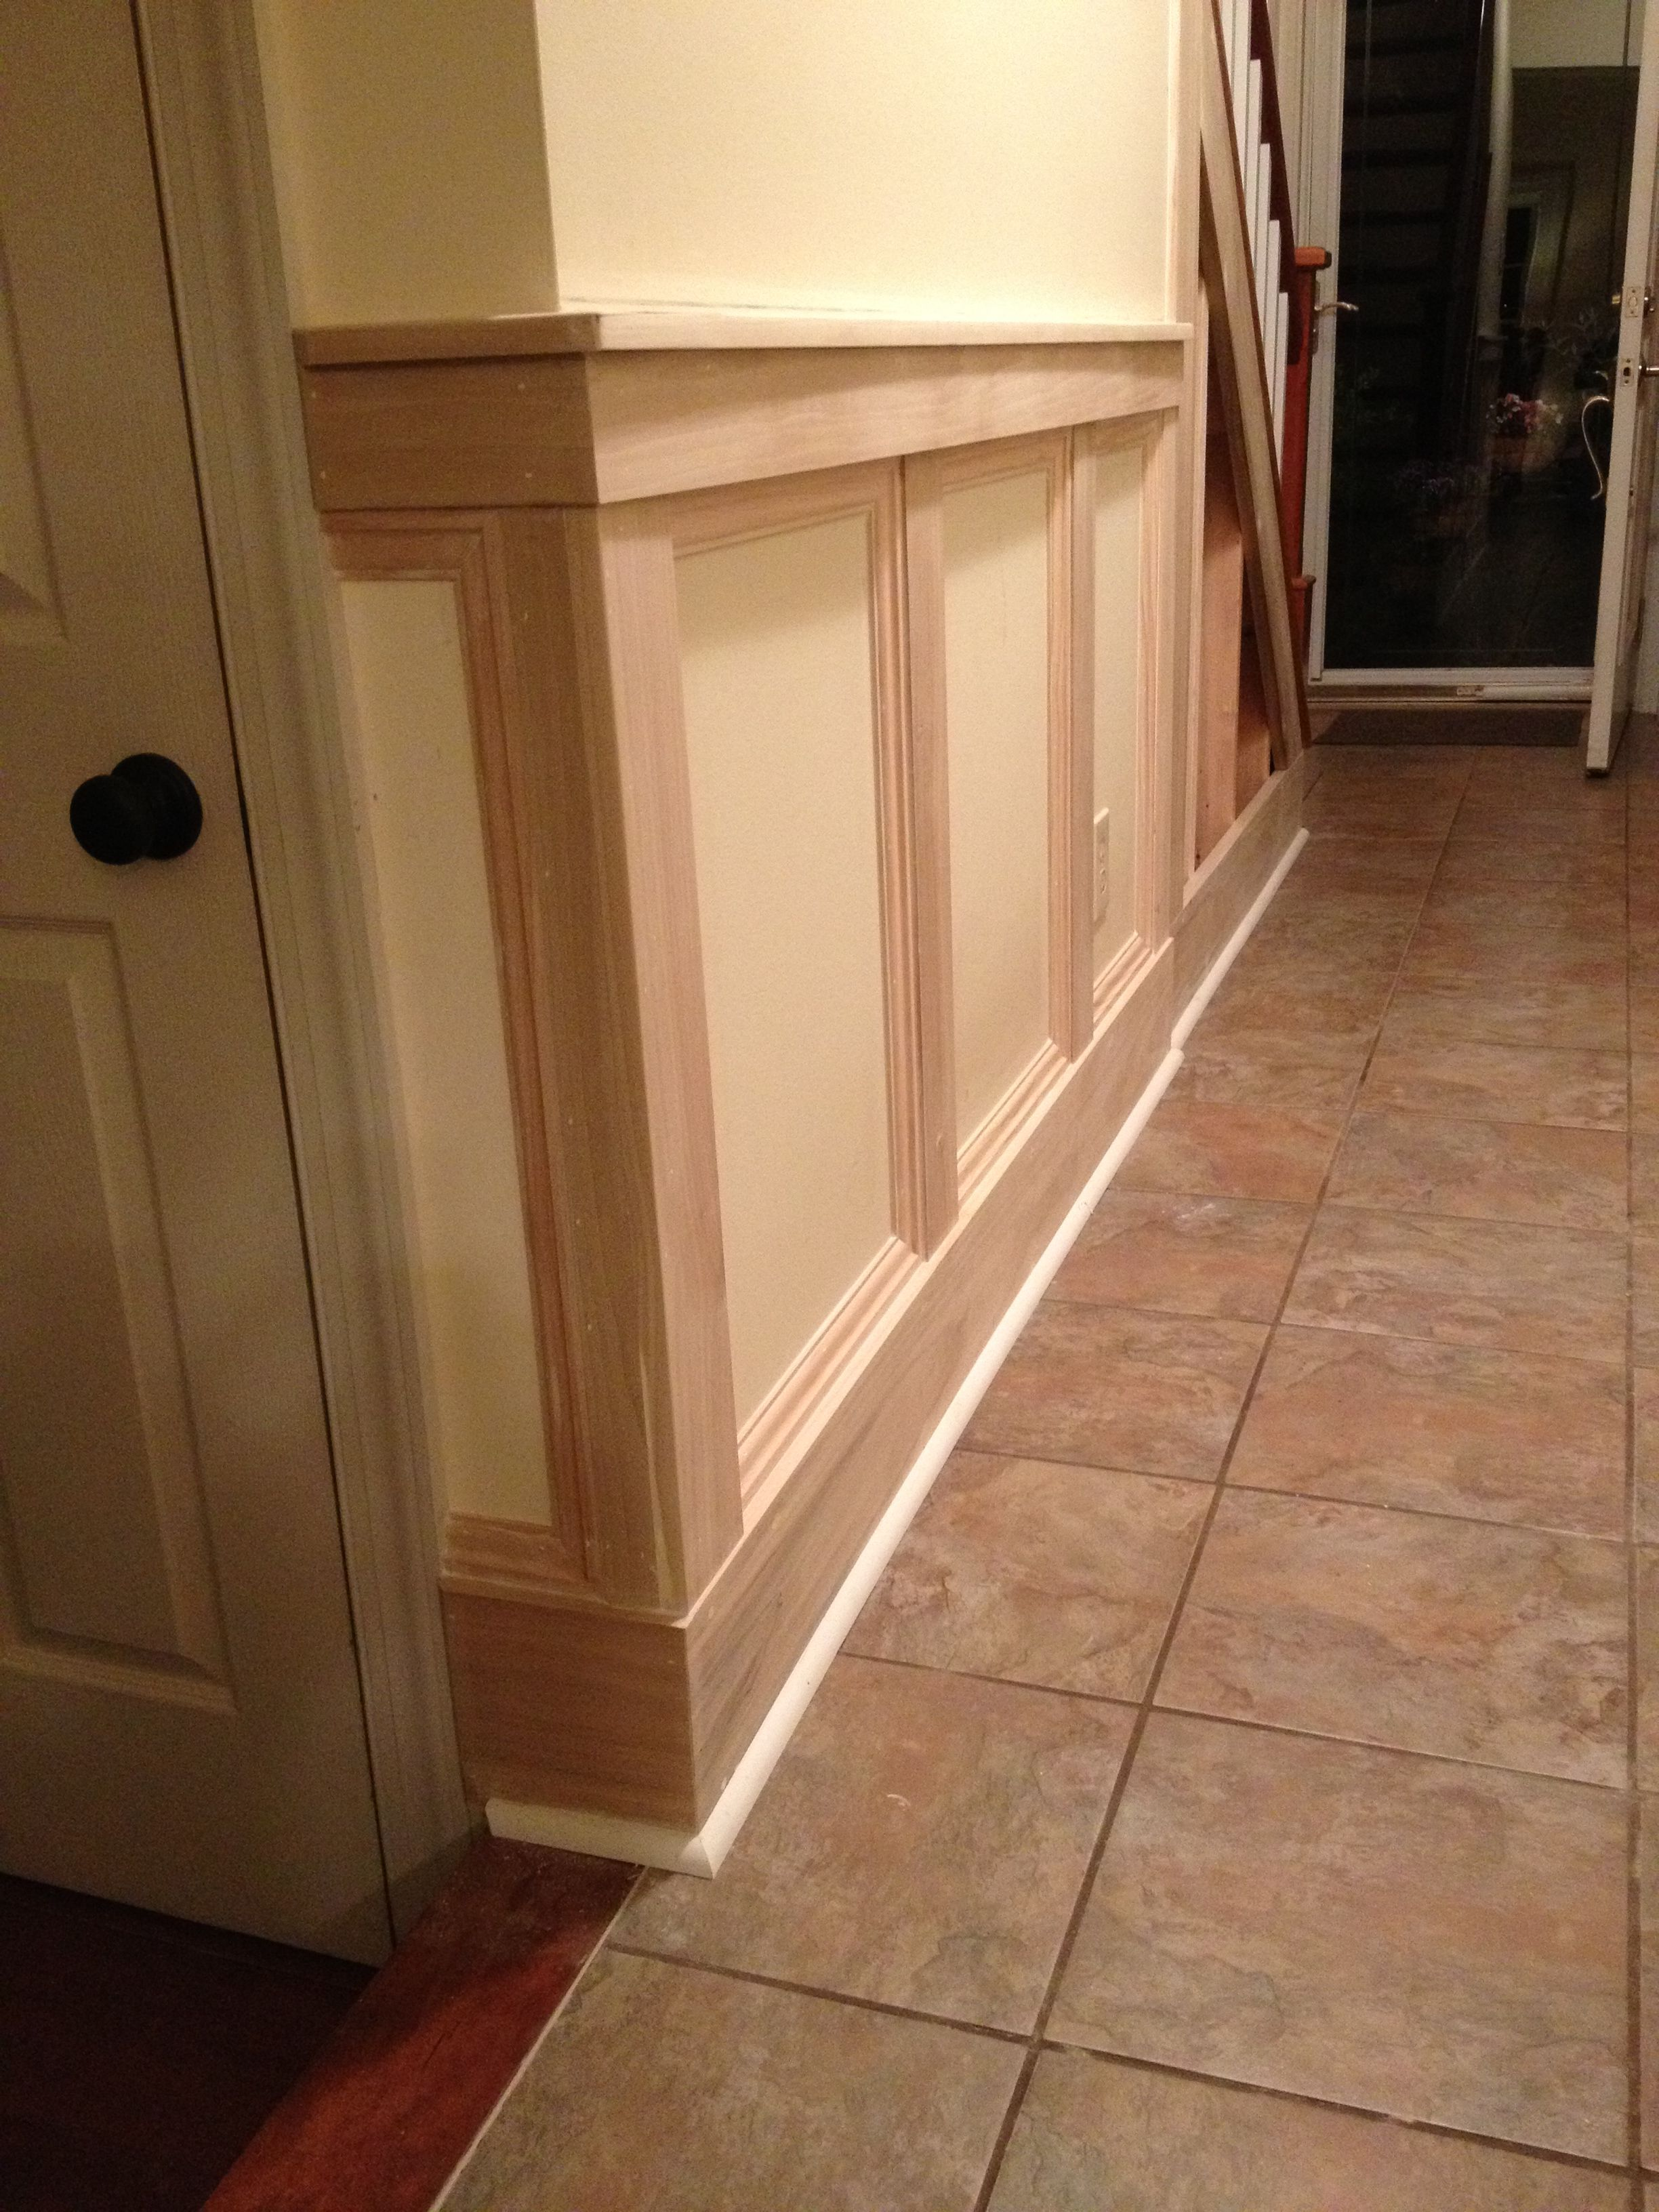 My First Attempt At Wainscoting #Squarewainscoting